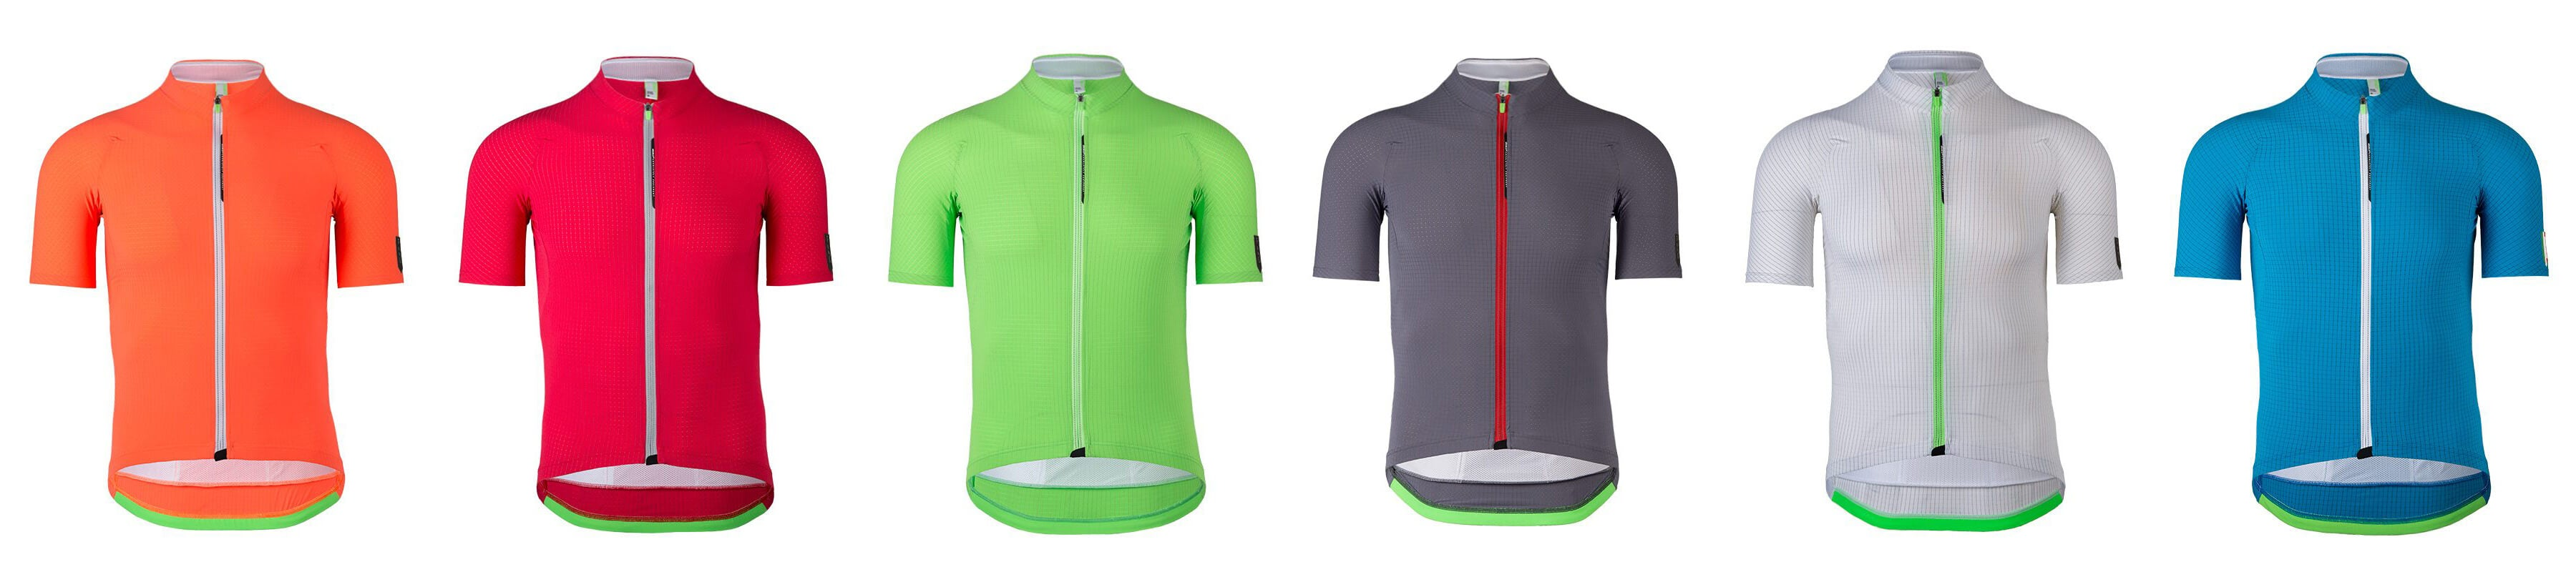 Q36.5 Pinstripe L1 Jersey - Contender Bicycles